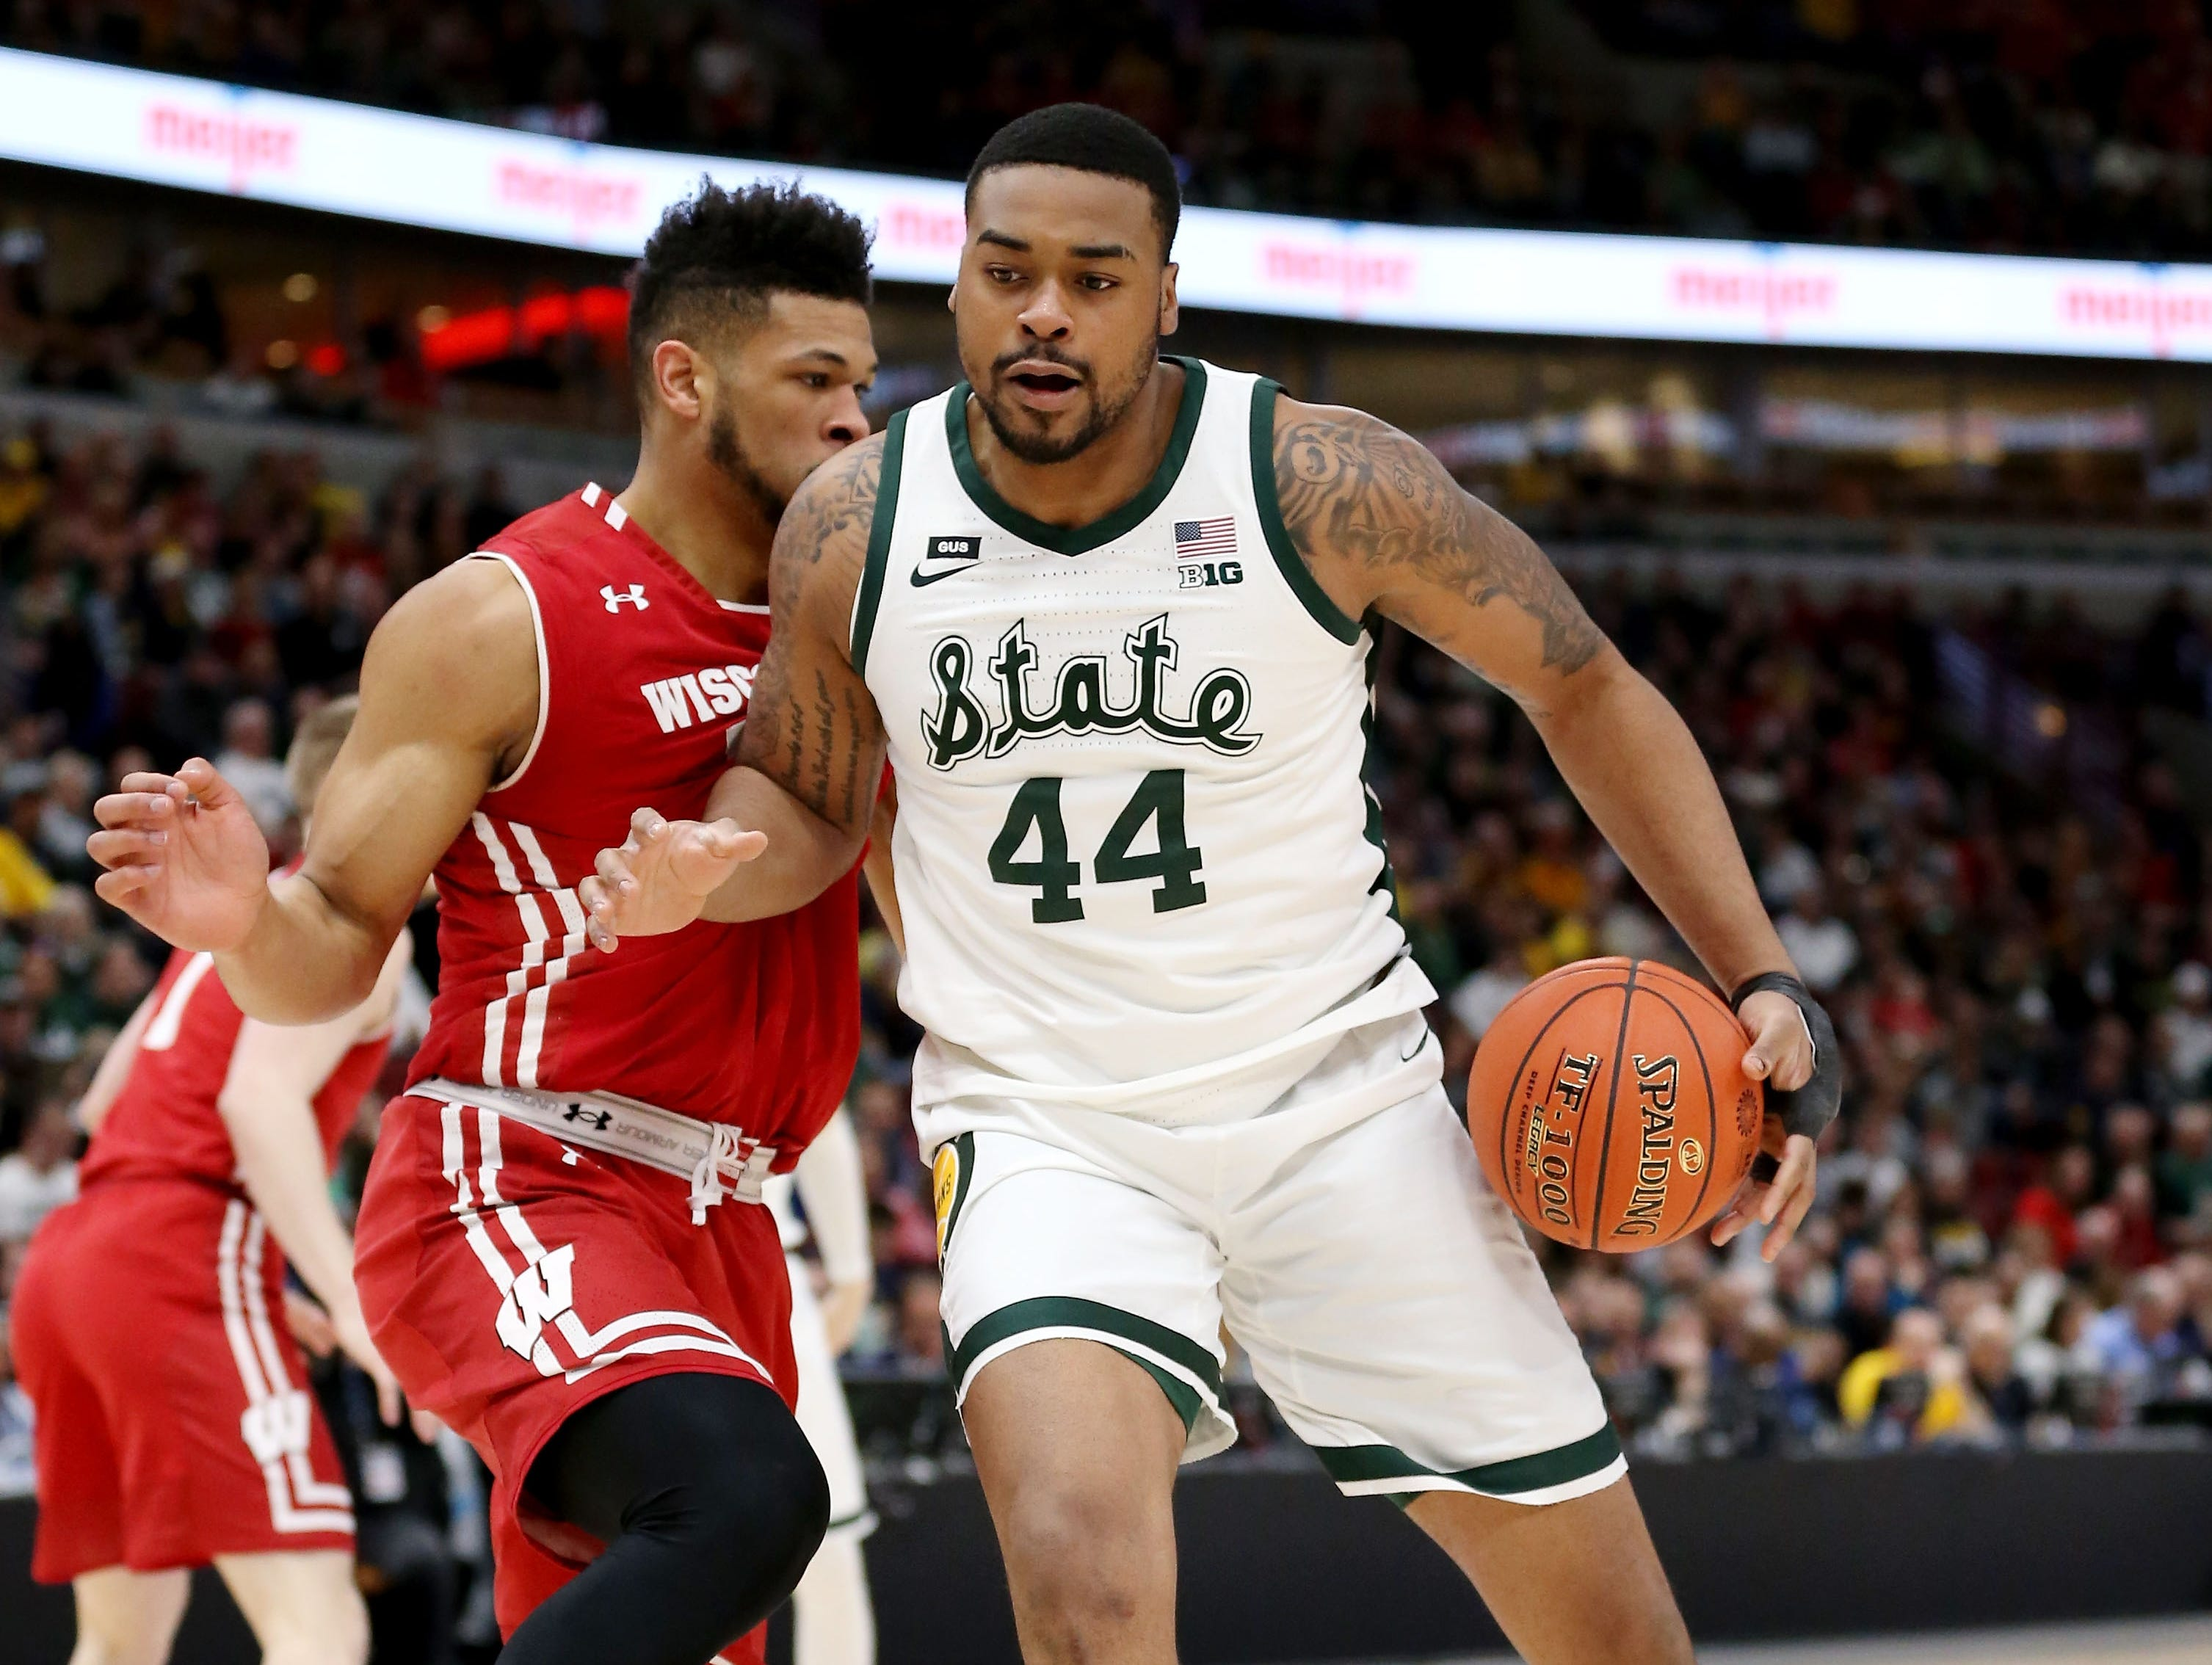 Nick Ward #44 of the Michigan State Spartans dribbles the ball while being guarded by Charles Thomas IV #15 of the Wisconsin Badgers in the first half during the semifinals of the Big Ten Basketball Tournament at the United Center on March 16, 2019 in Chicago, Illinois.